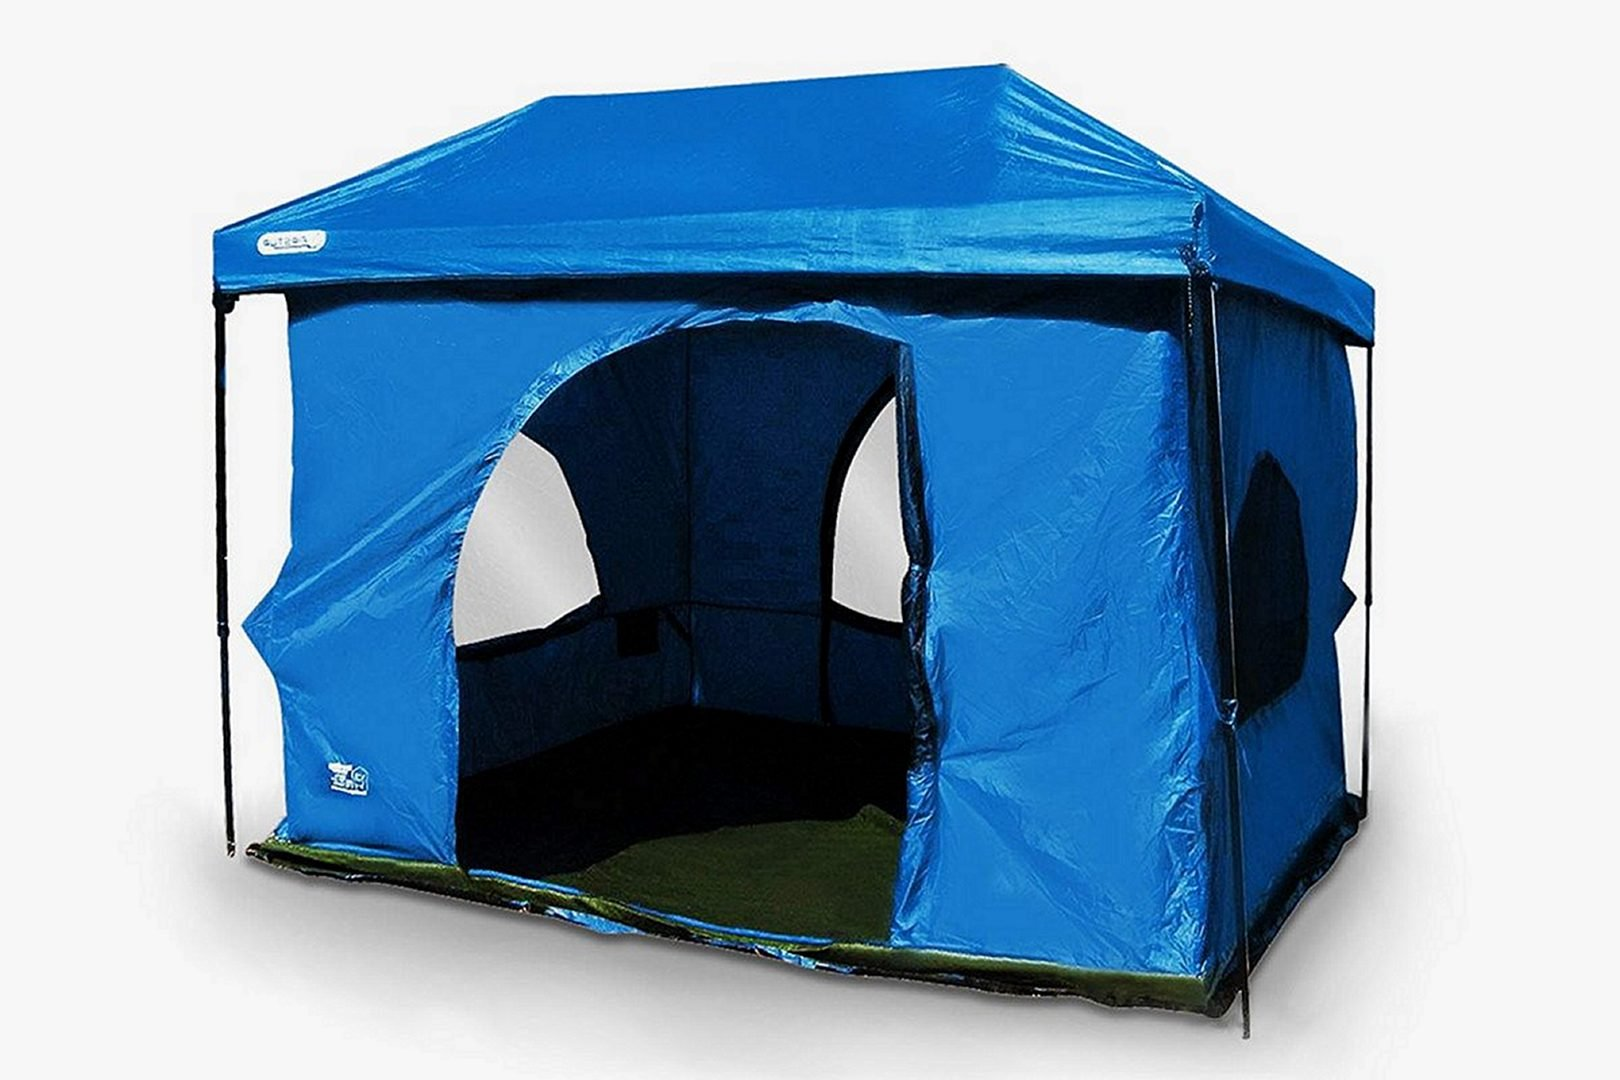 Standing Room 4-Person Tent